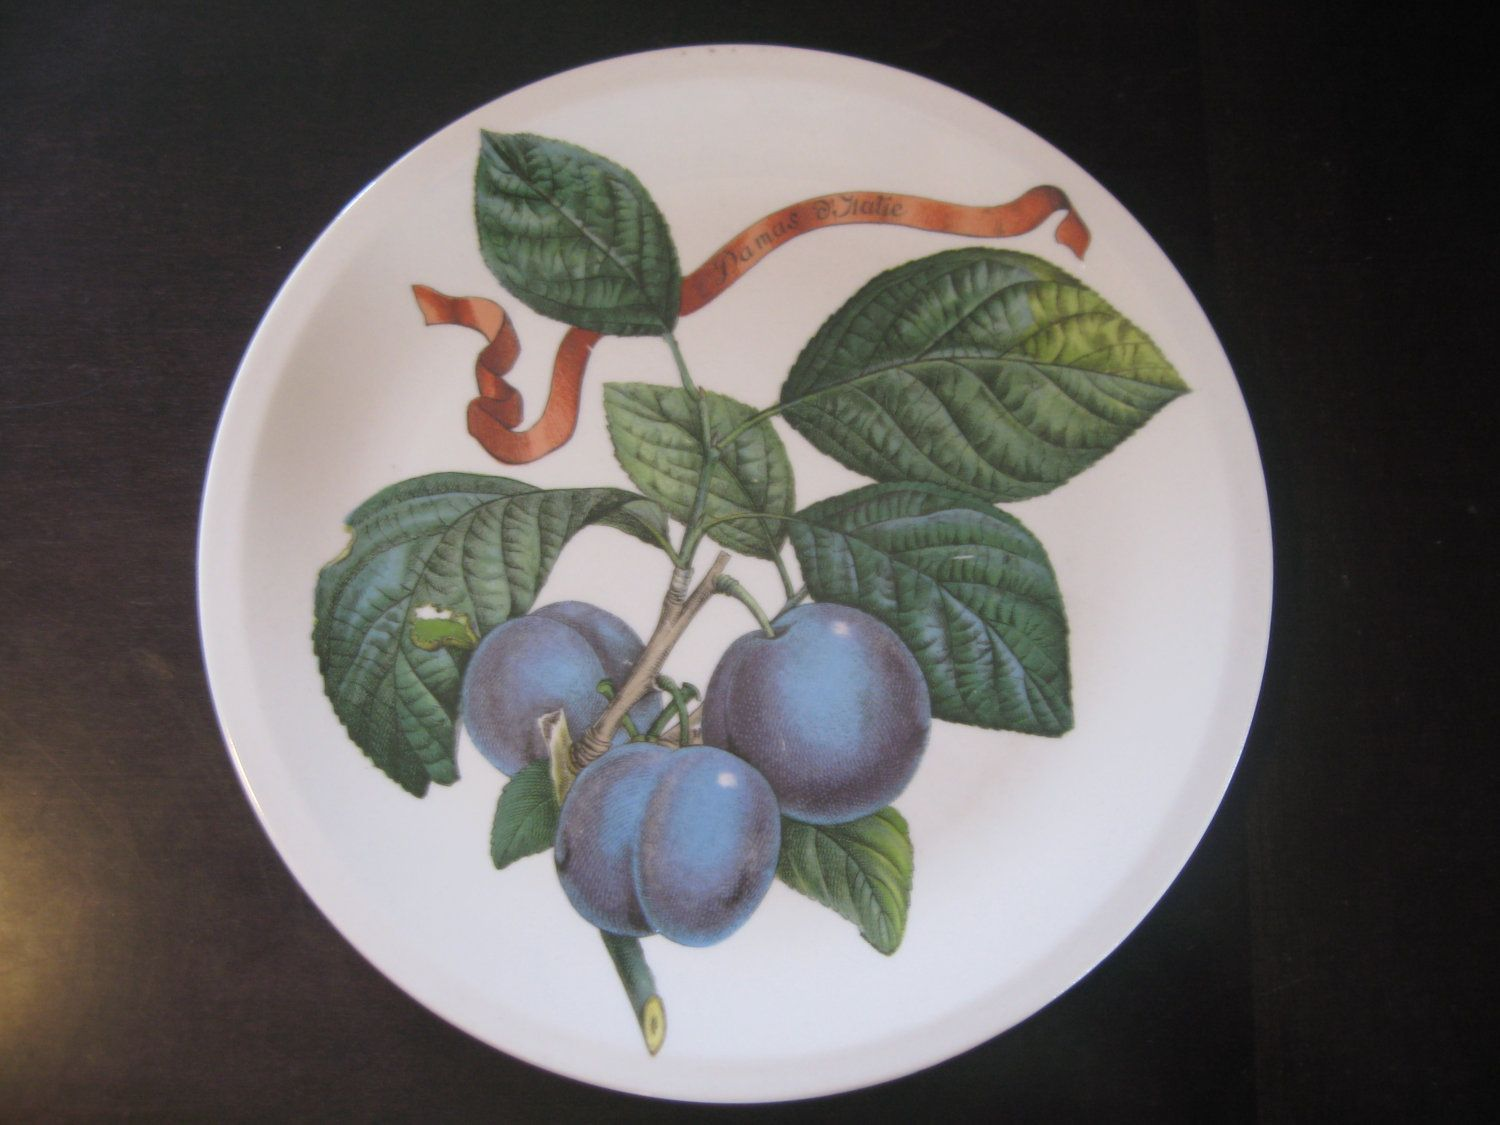 Villeroy and Boch Vintage Plates.